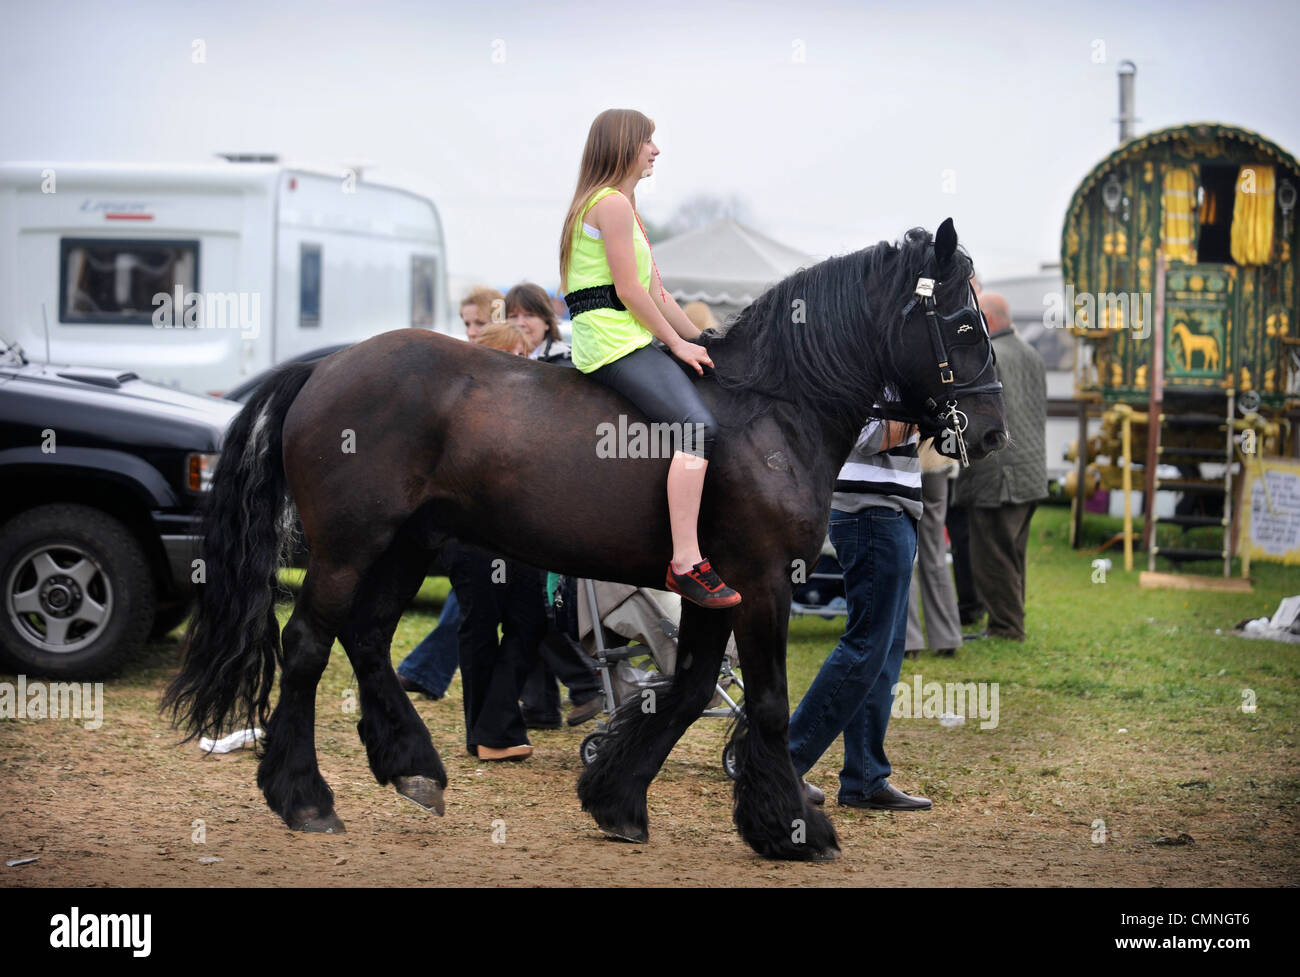 A girl riding a cart horse at the Stow-on-the-Wold horse fair May 2009 UK - Stock Image